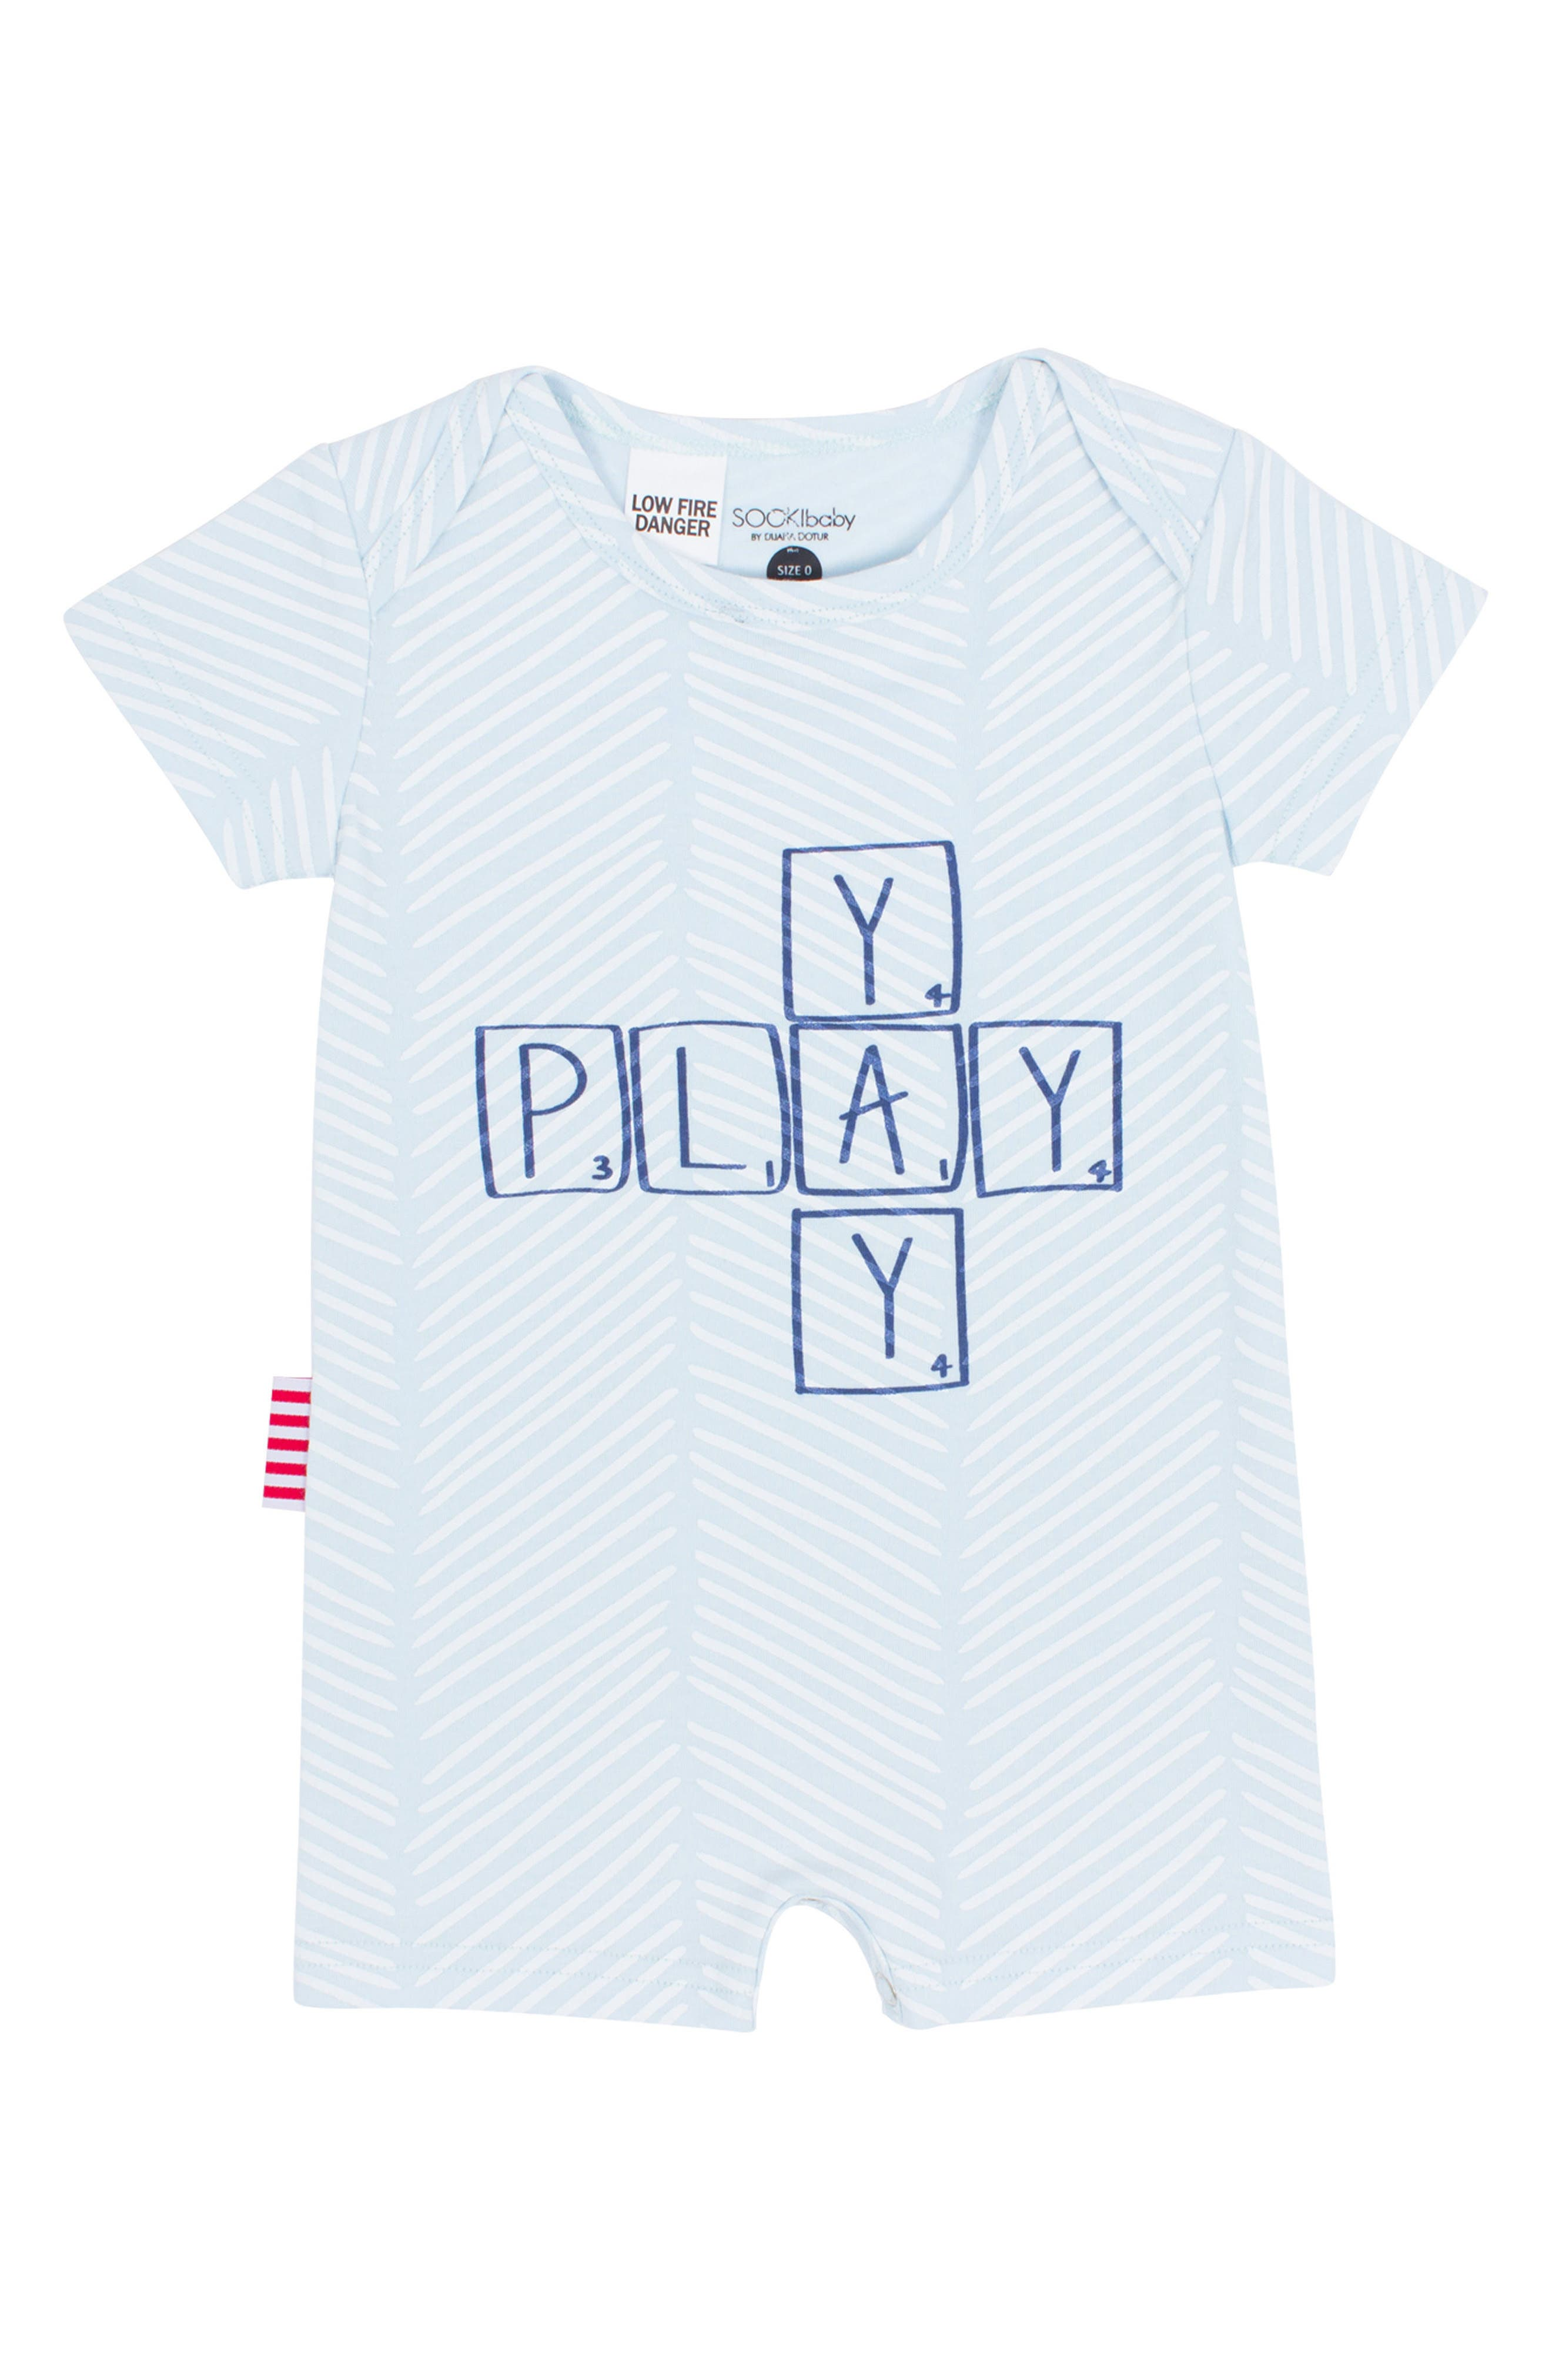 Alternate Image 1 Selected - SOOKIbaby Yay Play Romper (Baby Boys)